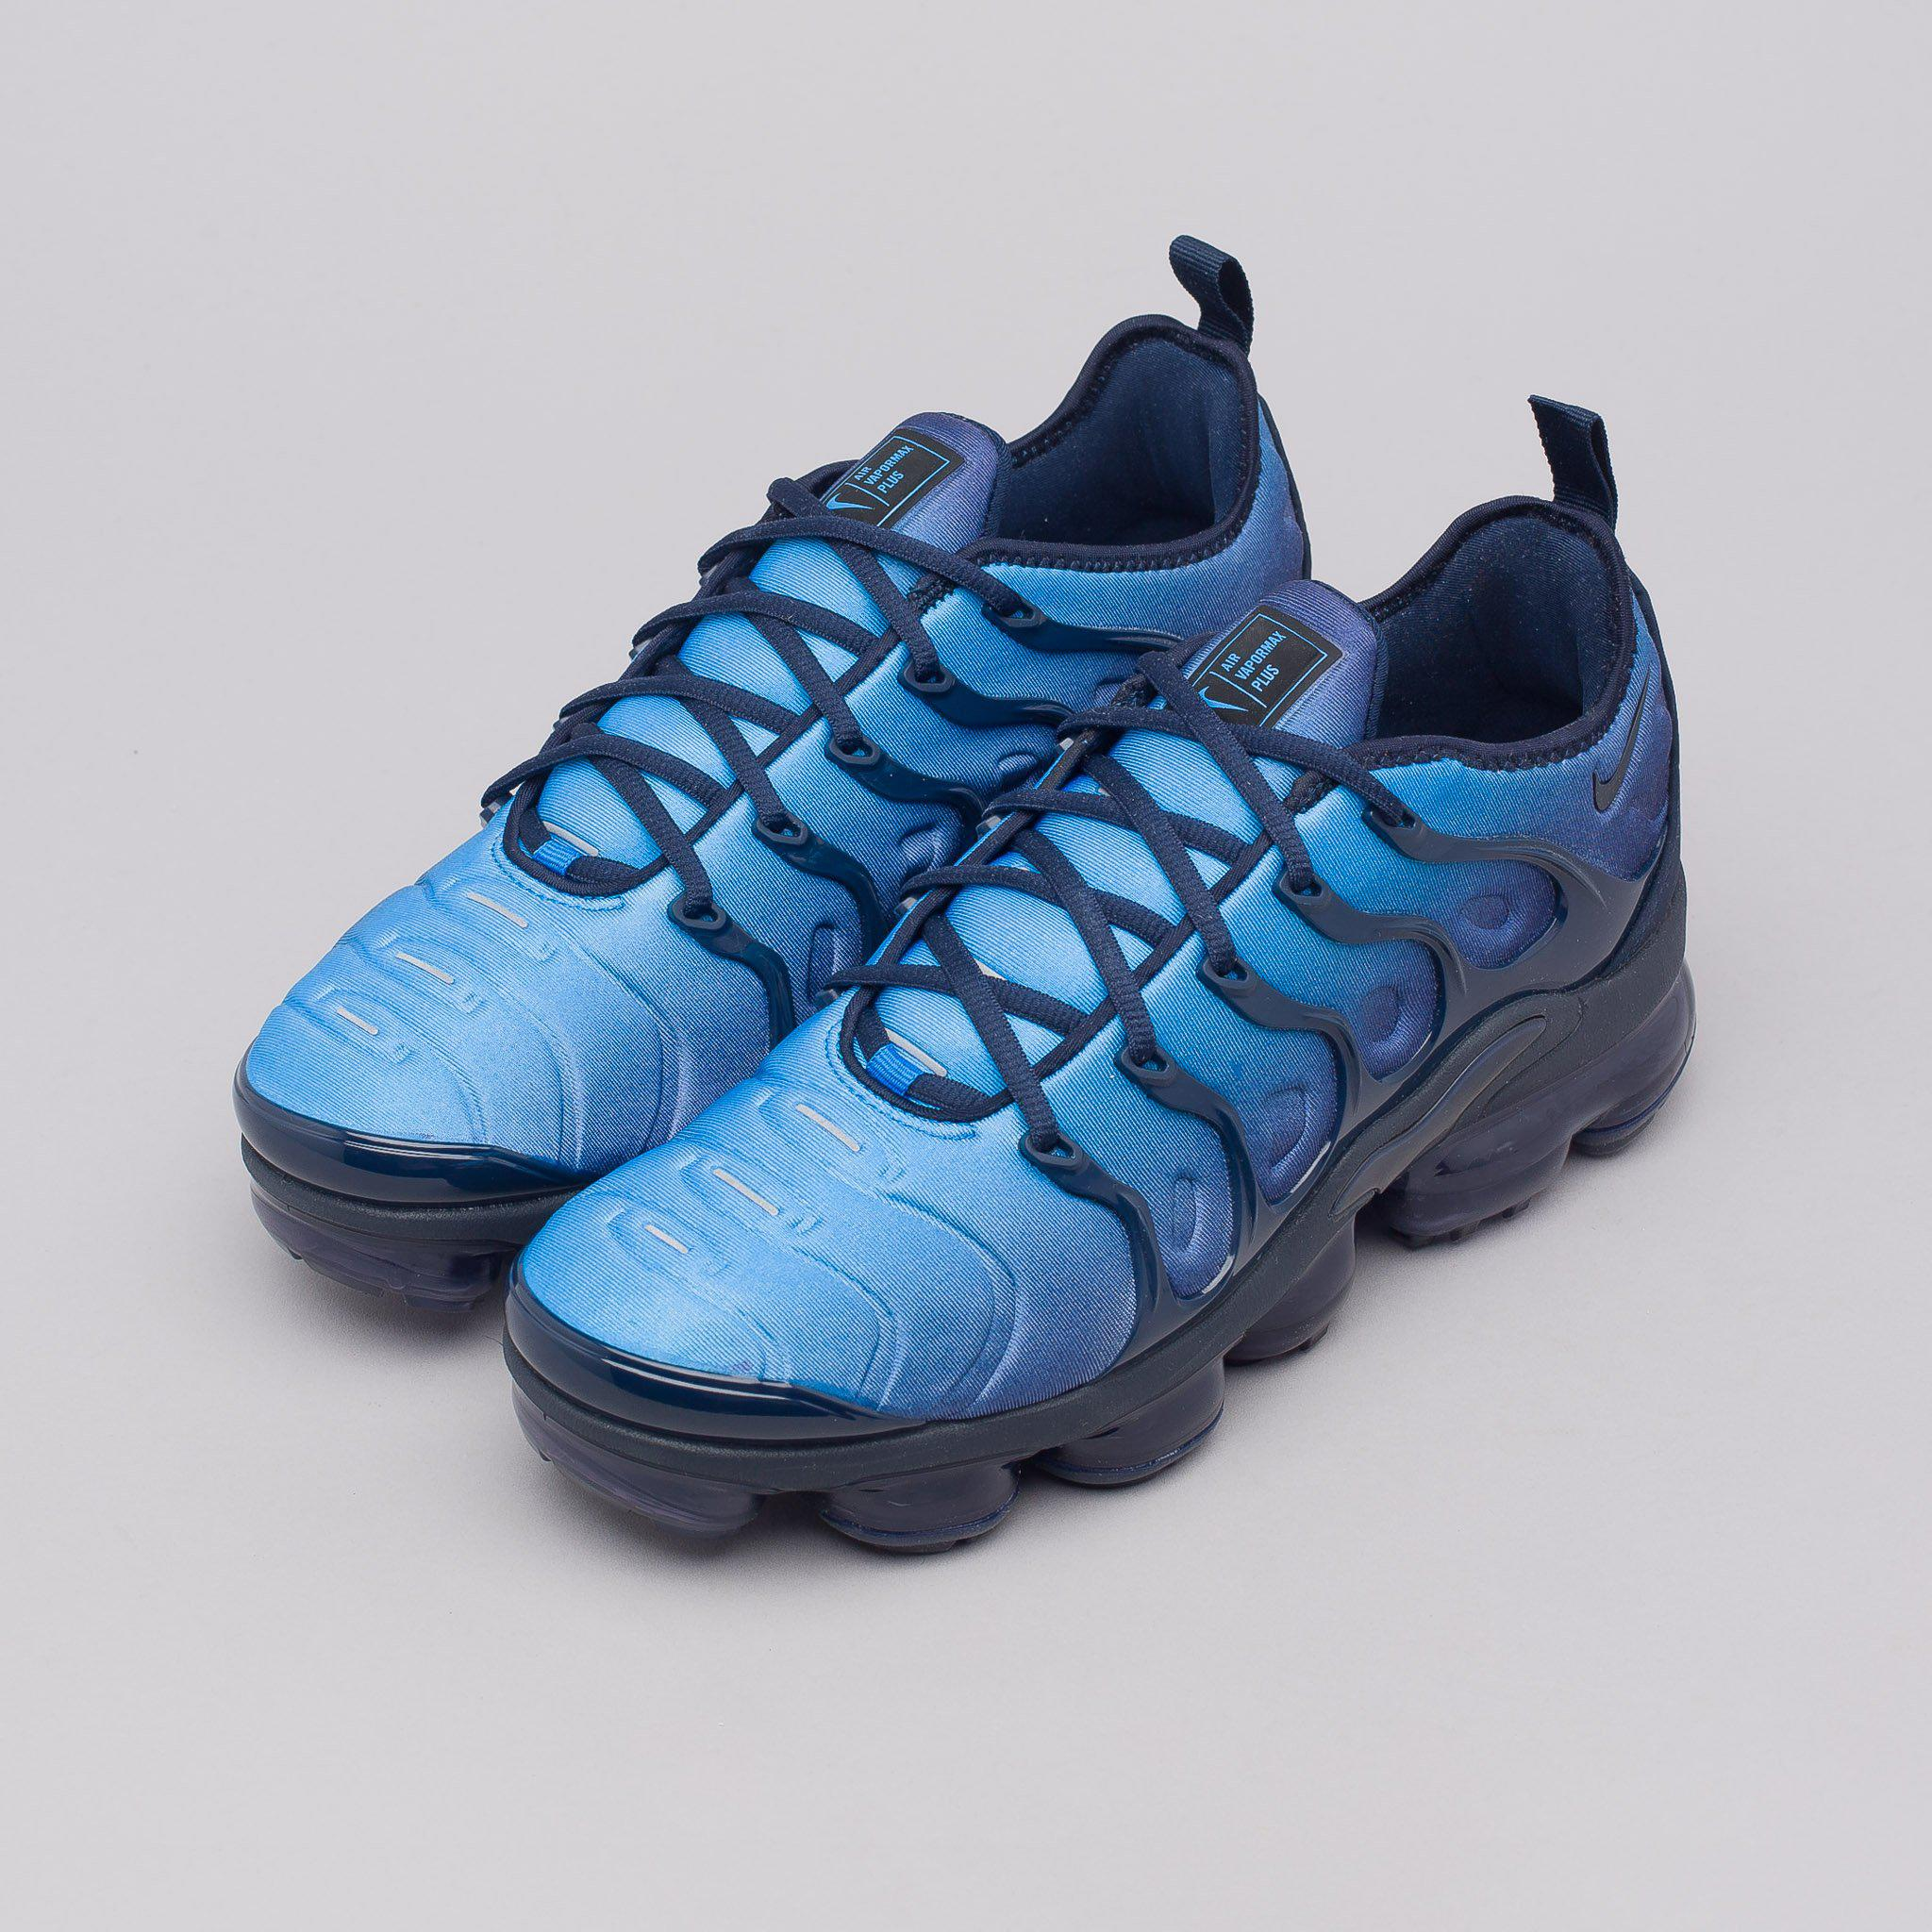 d1b41ef6579cd0 Lyst - Nike Air Vapormax Plus In Obsidian in Blue for Men